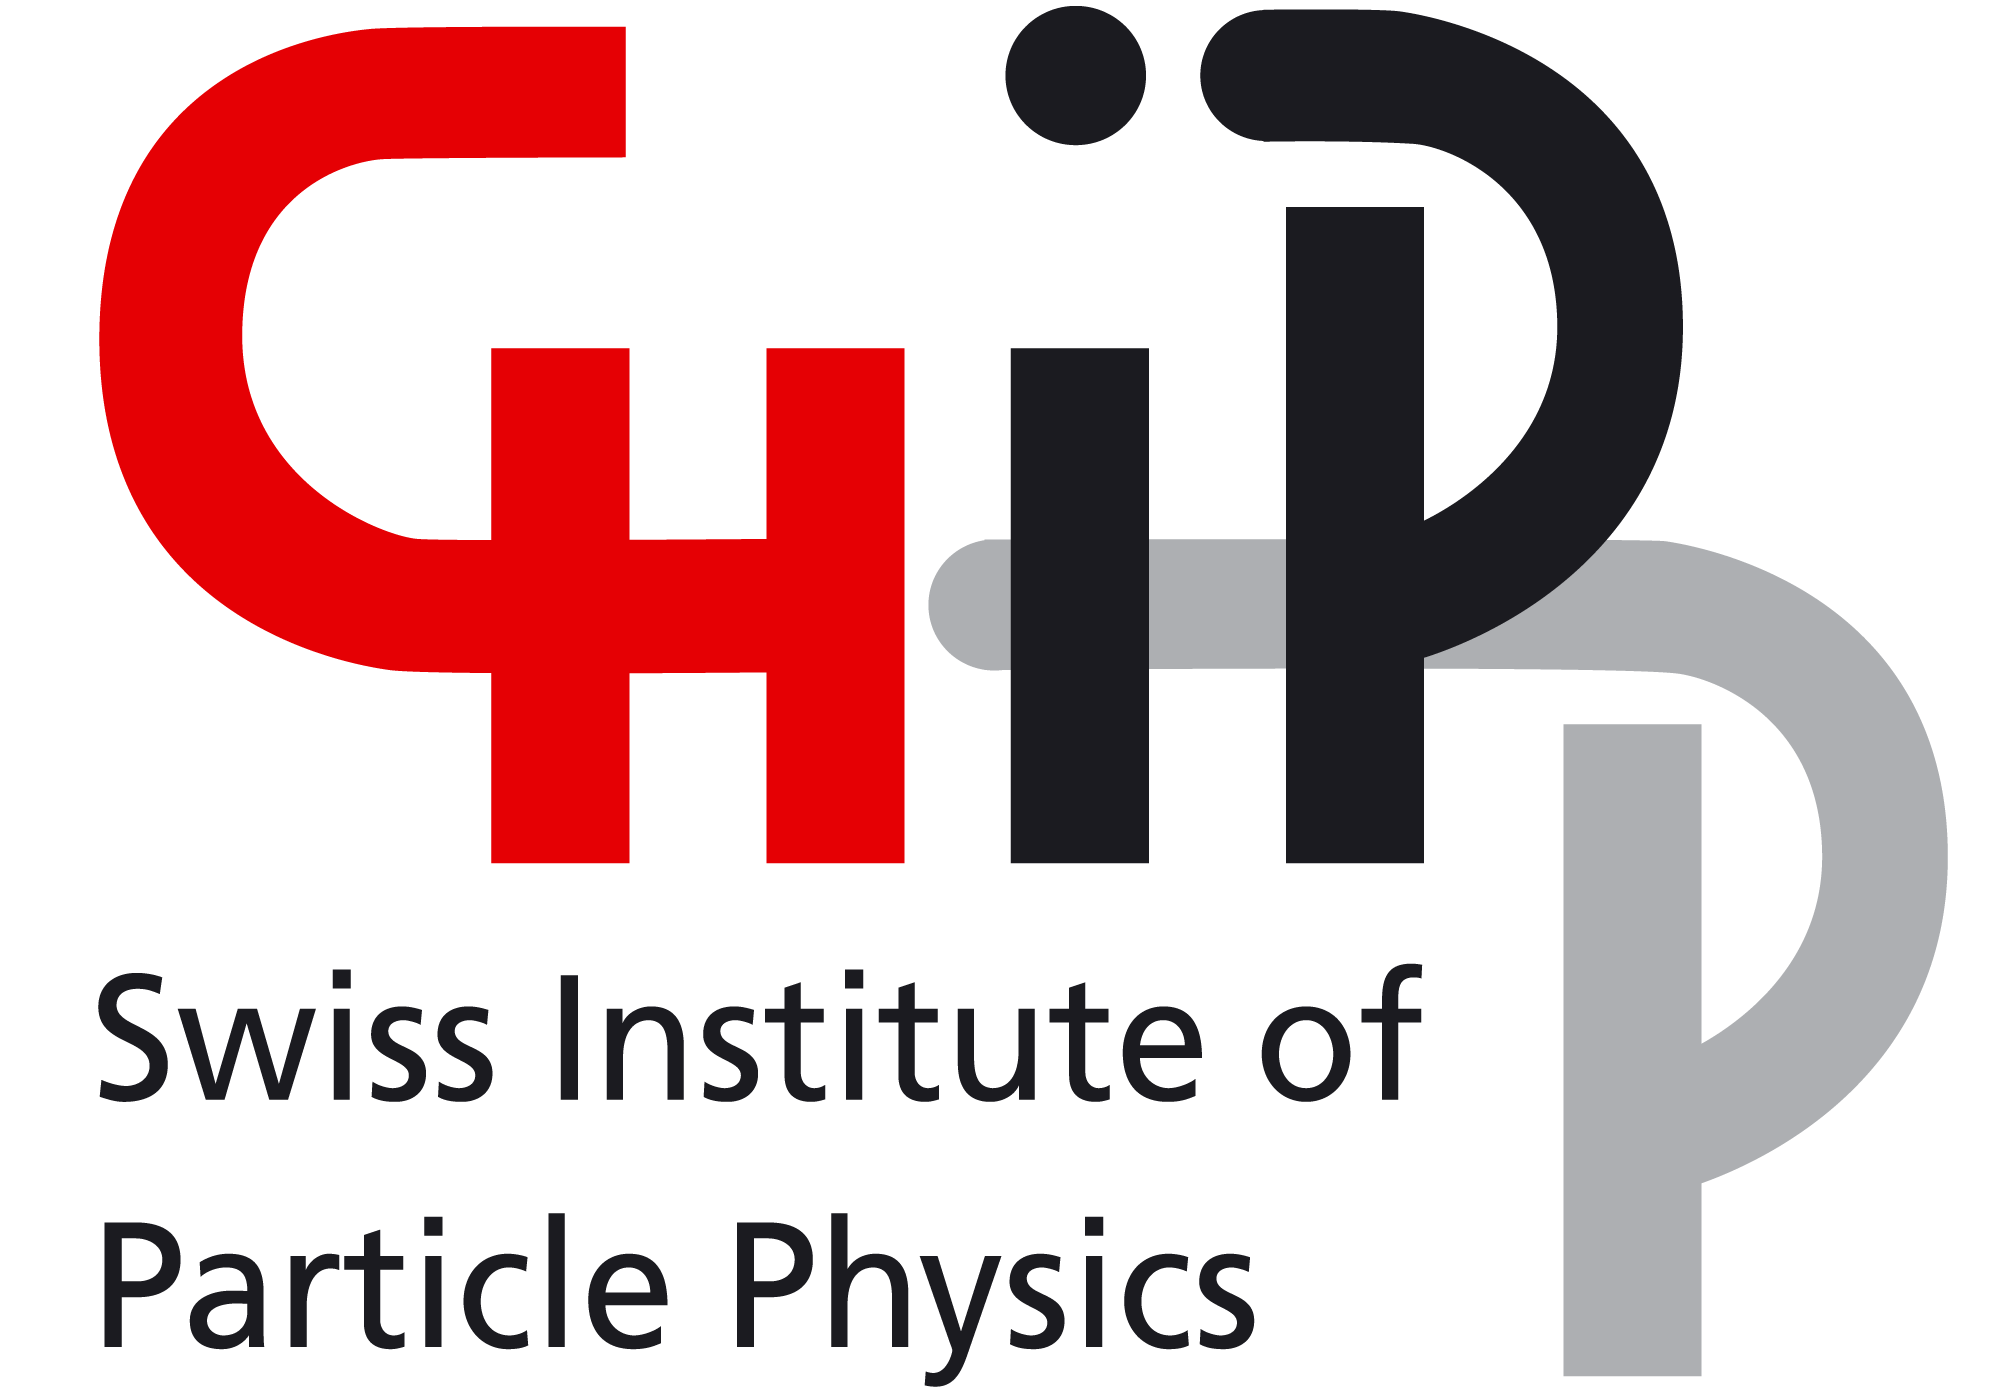 CHIPP logo